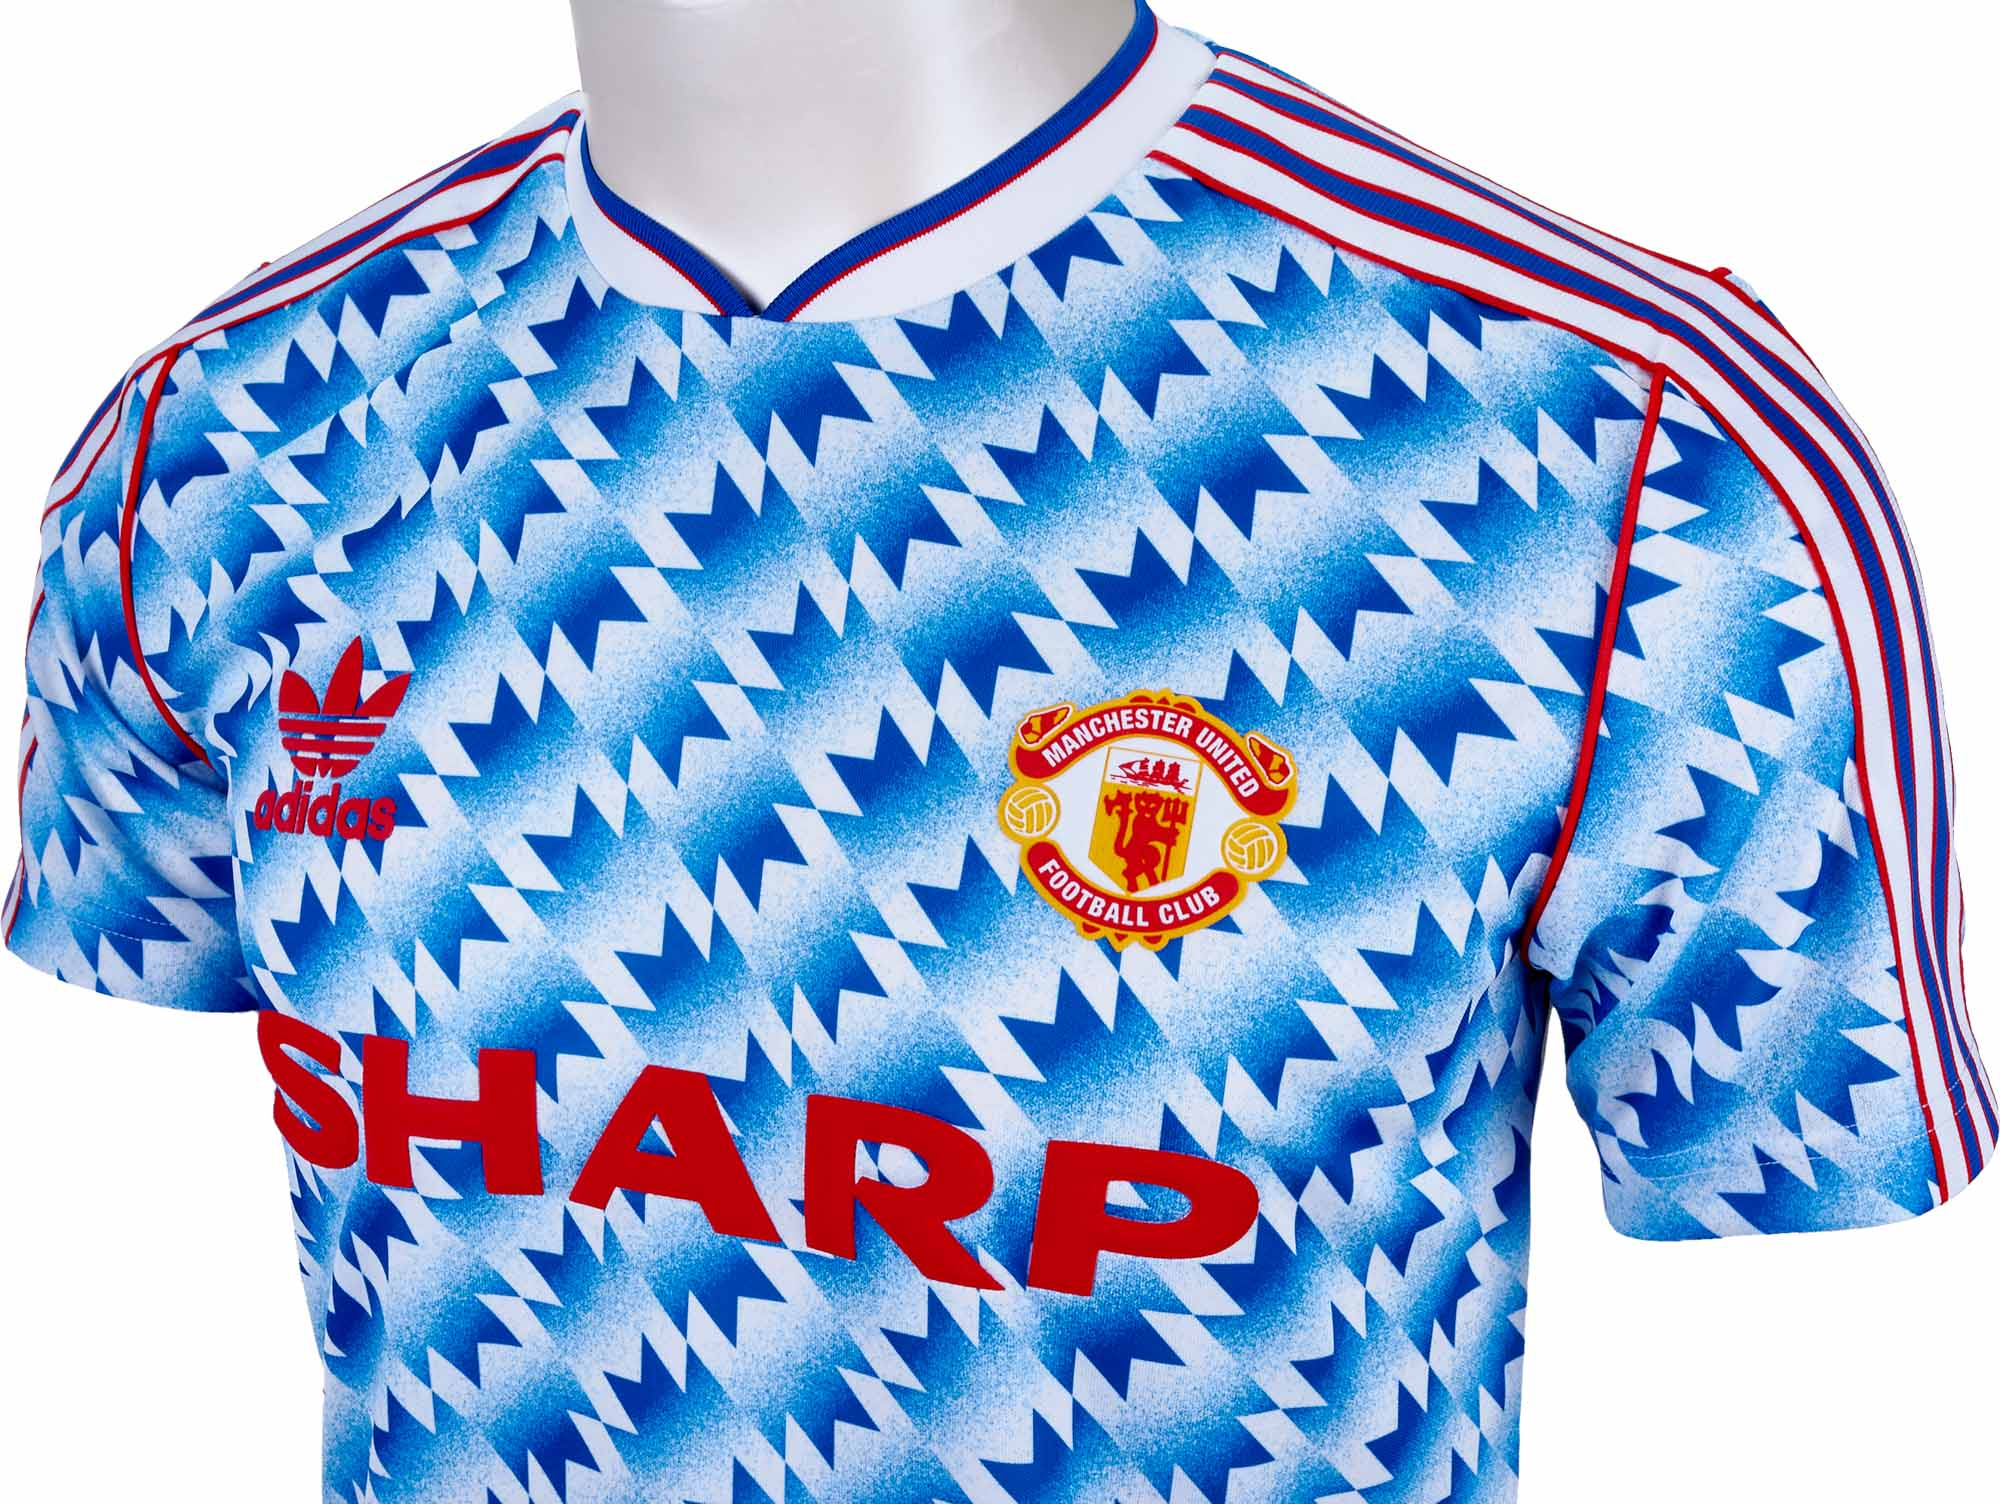 adidas originals manchester united retro jersey multicolor adidas originals manchester united